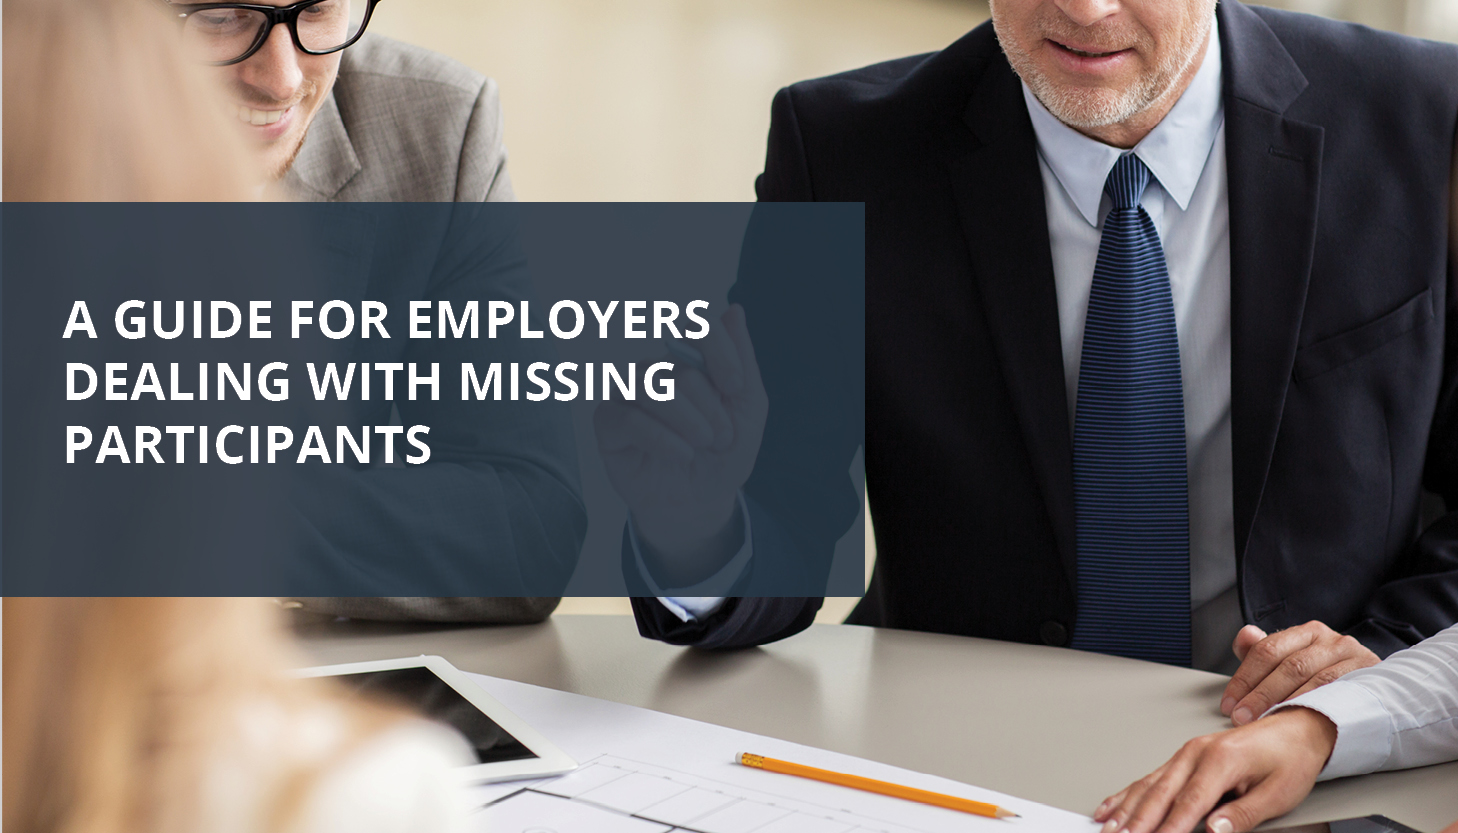 RPM Q3 2018_Pulse Image_Blog Article 1_ A Guide for Employers Dealing with Missing Participants